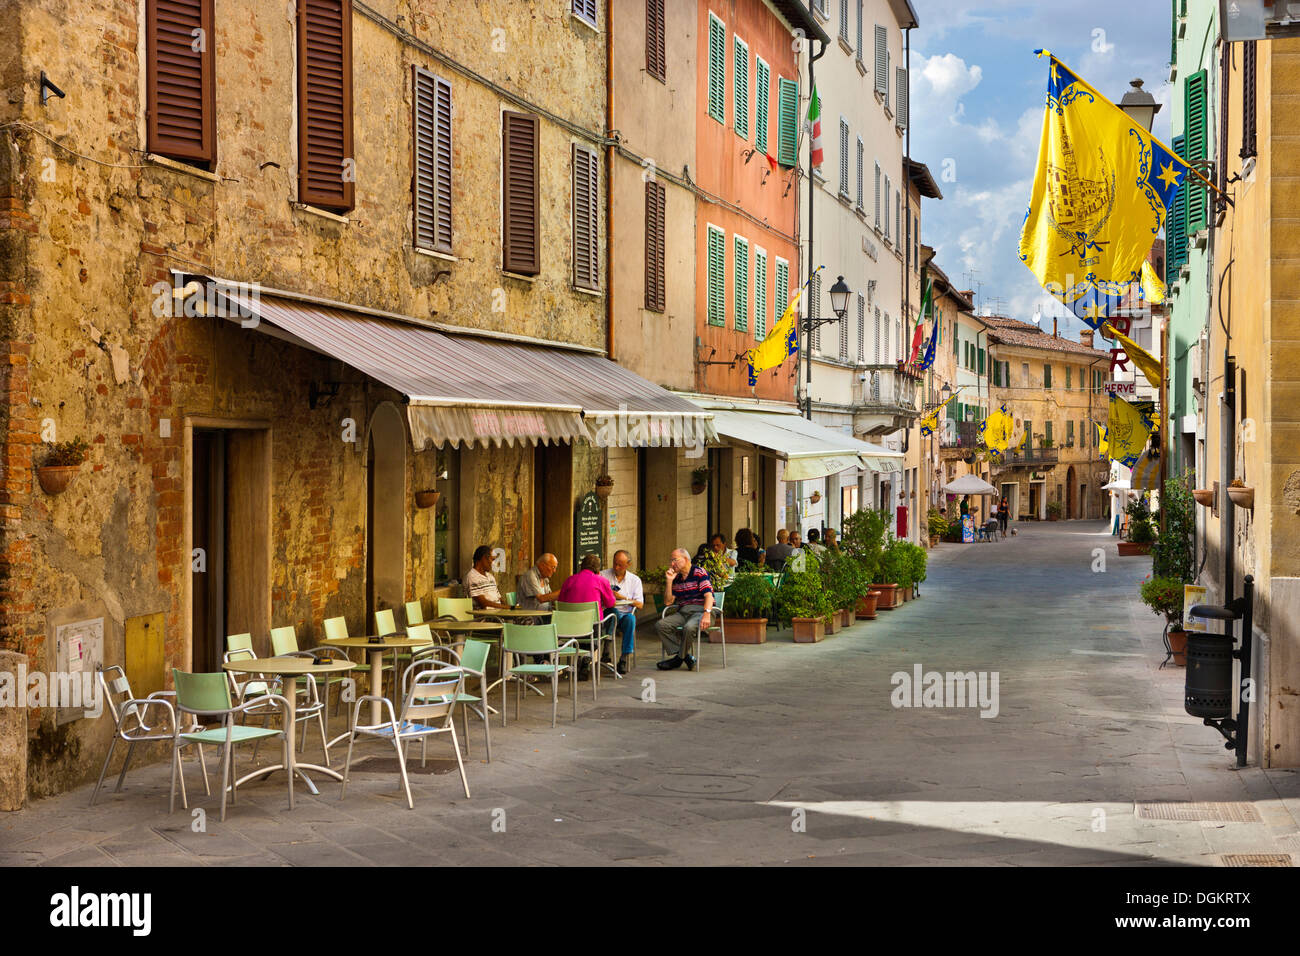 People sitting at tables outside the wine bar in Asciano. - Stock Image